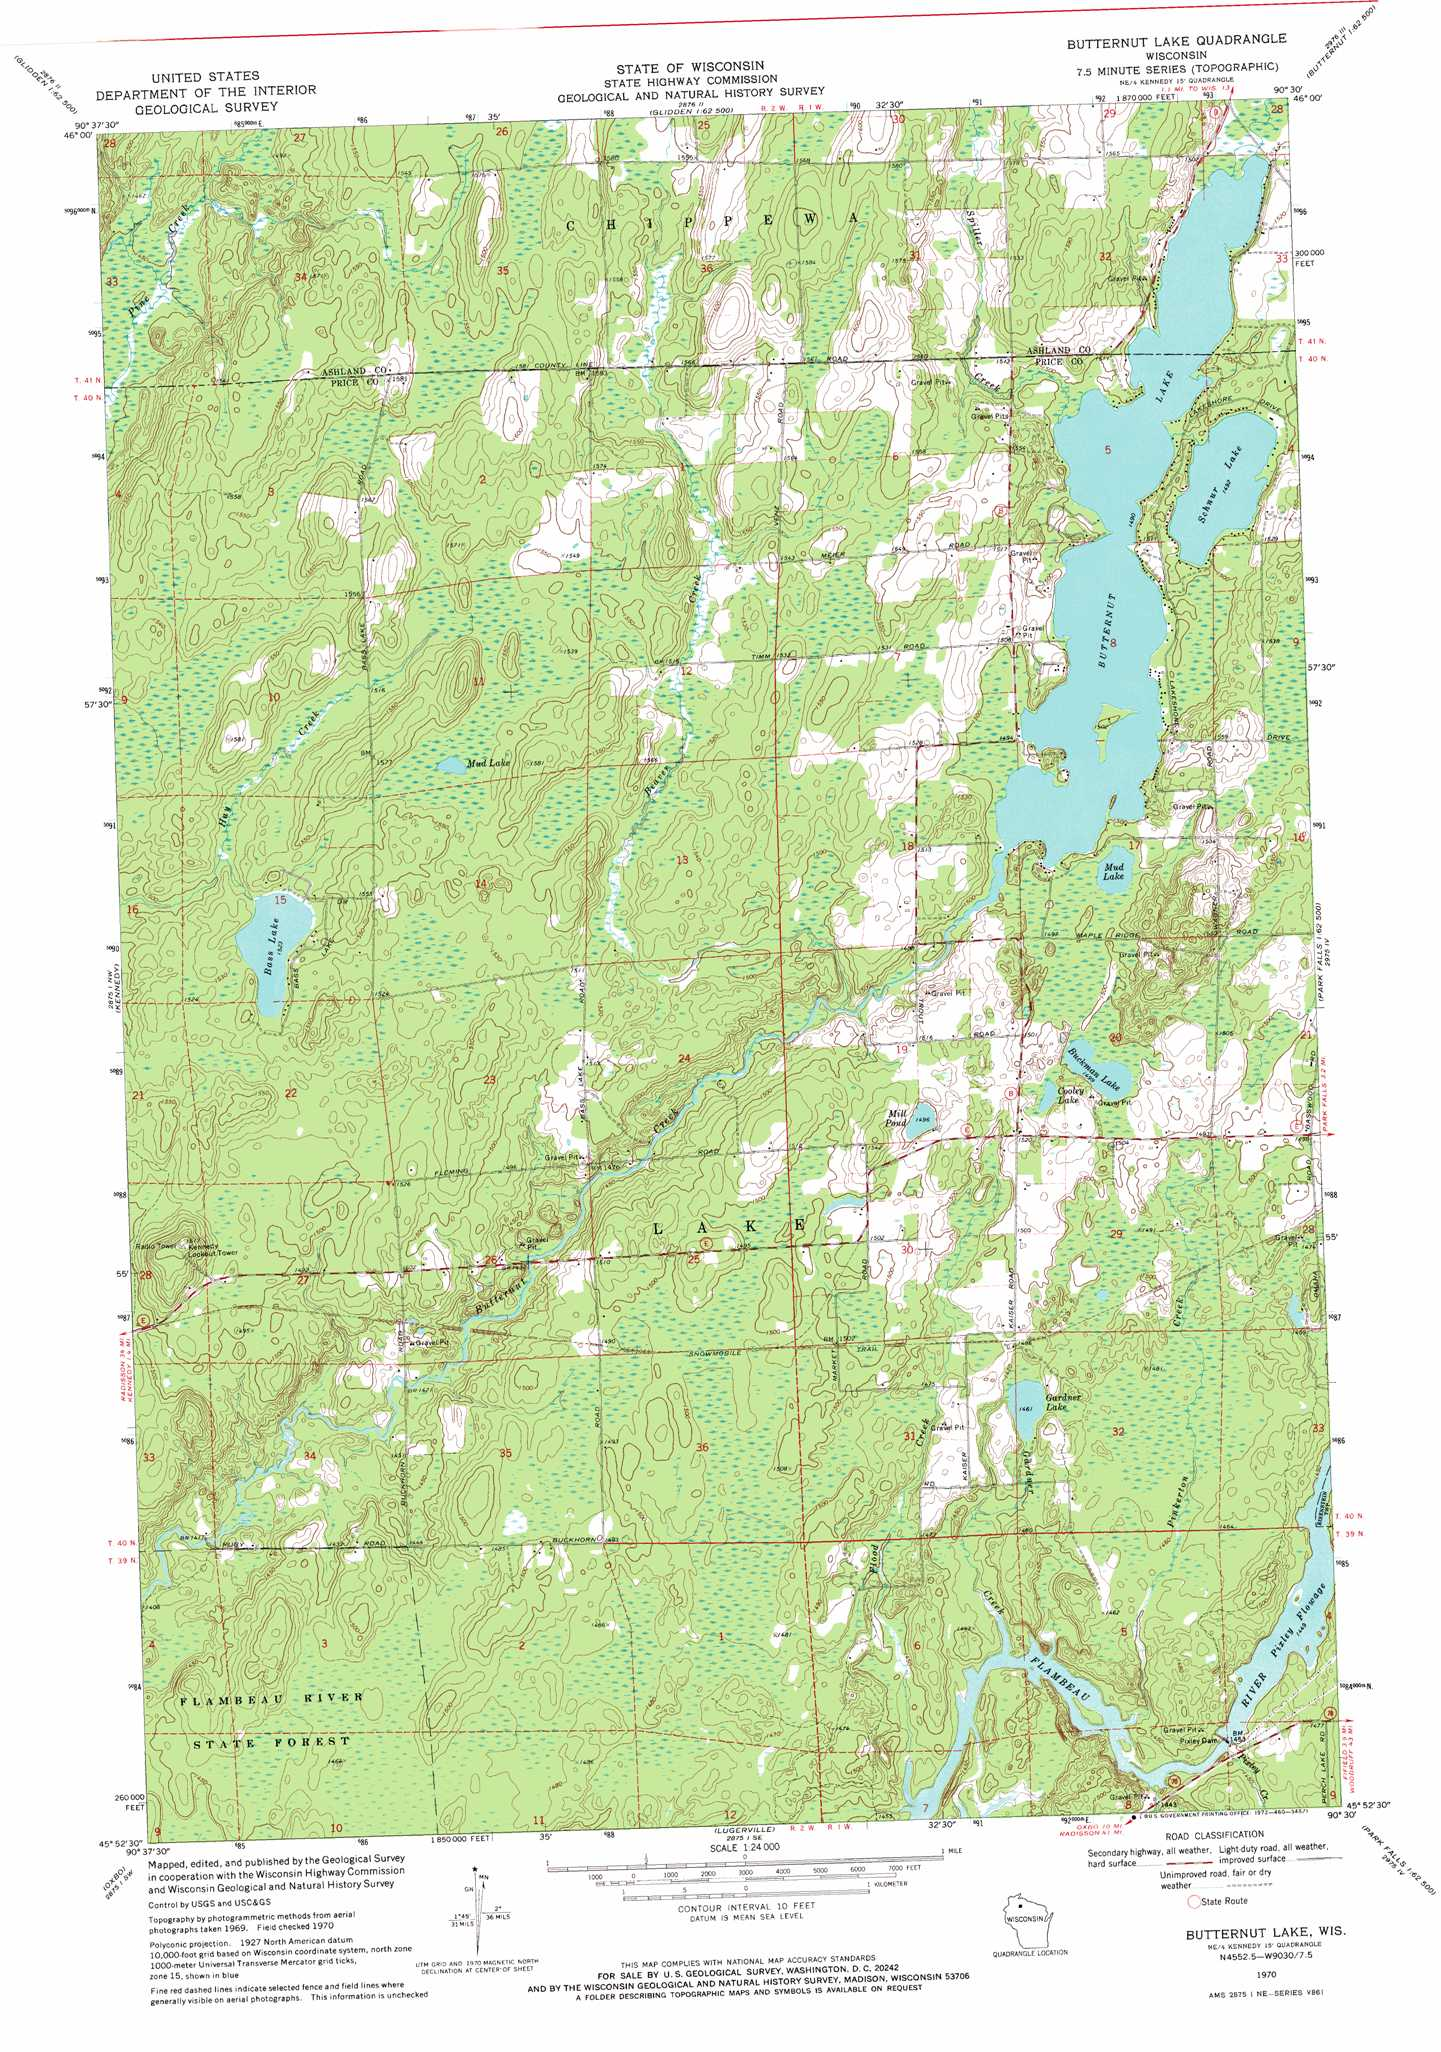 Butternut Lake topographic map, WI   USGS Topo Quad 45090h5